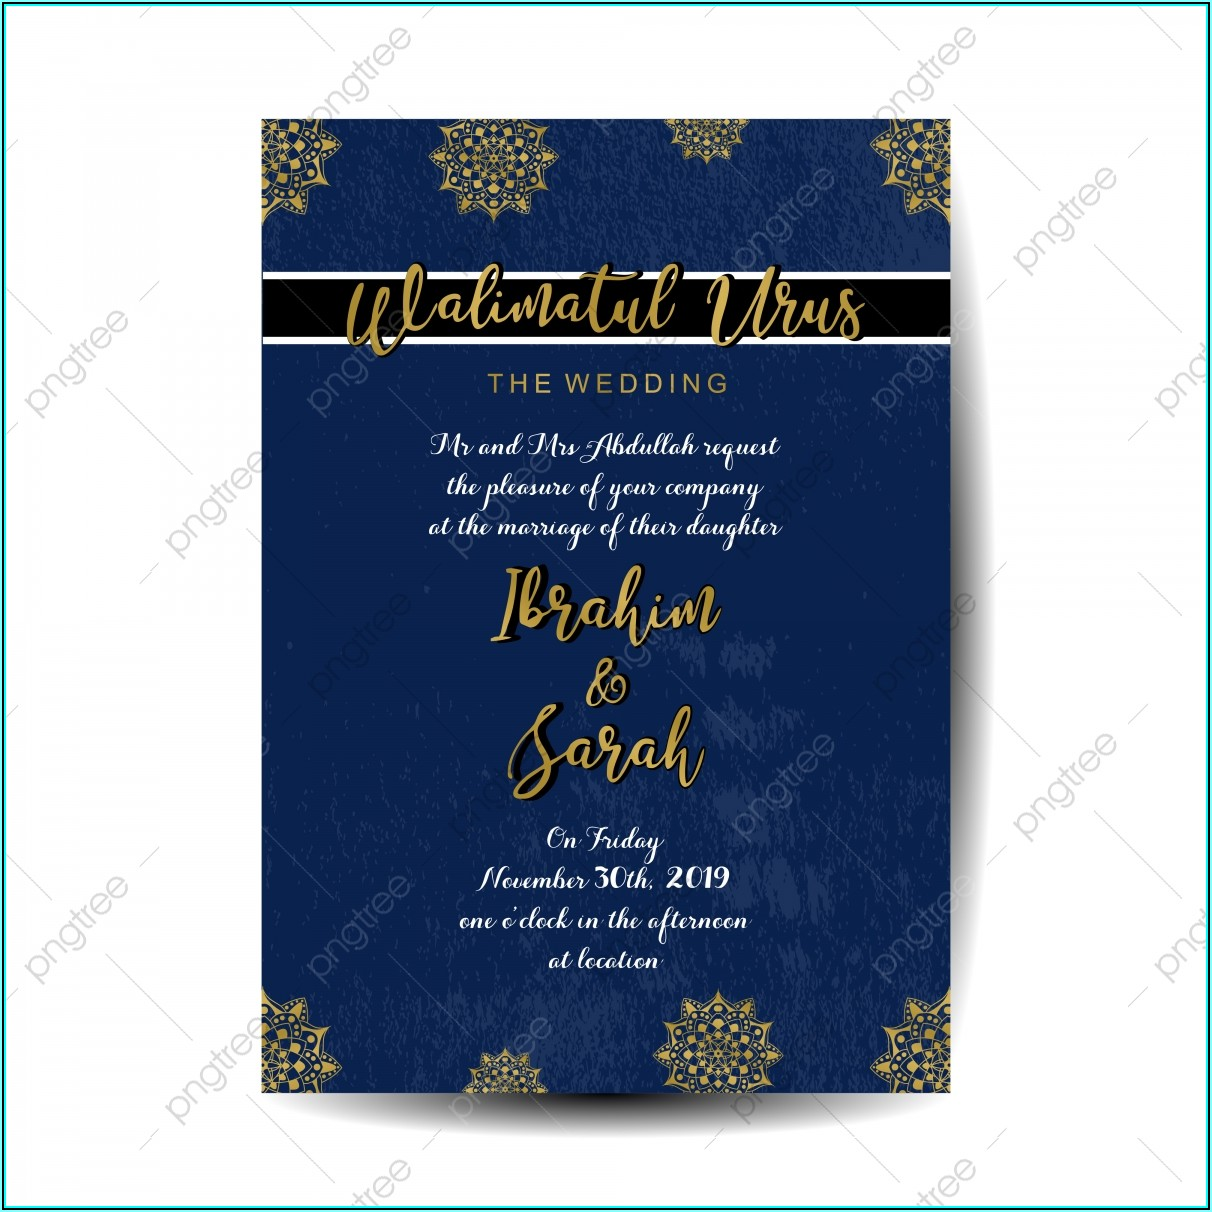 Islamic Wedding Invitation Template Free